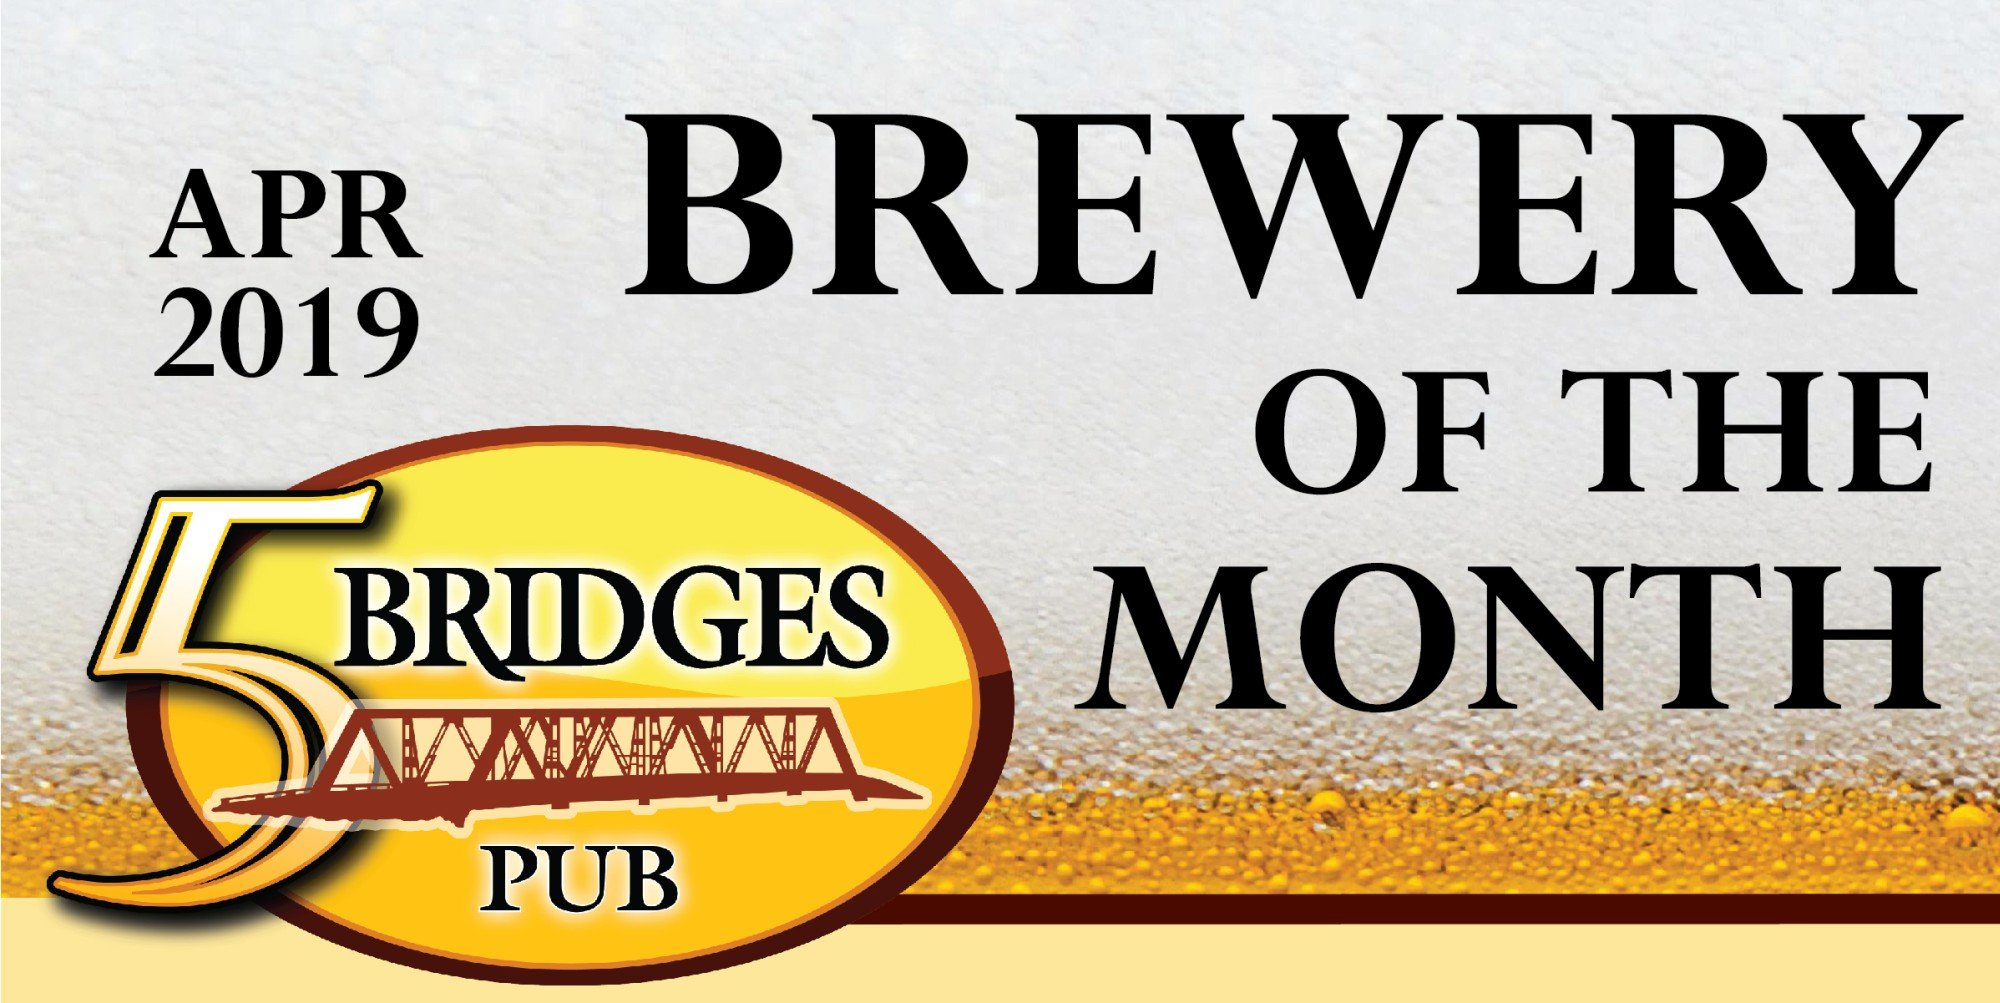 April 2019 Brewery of the Month